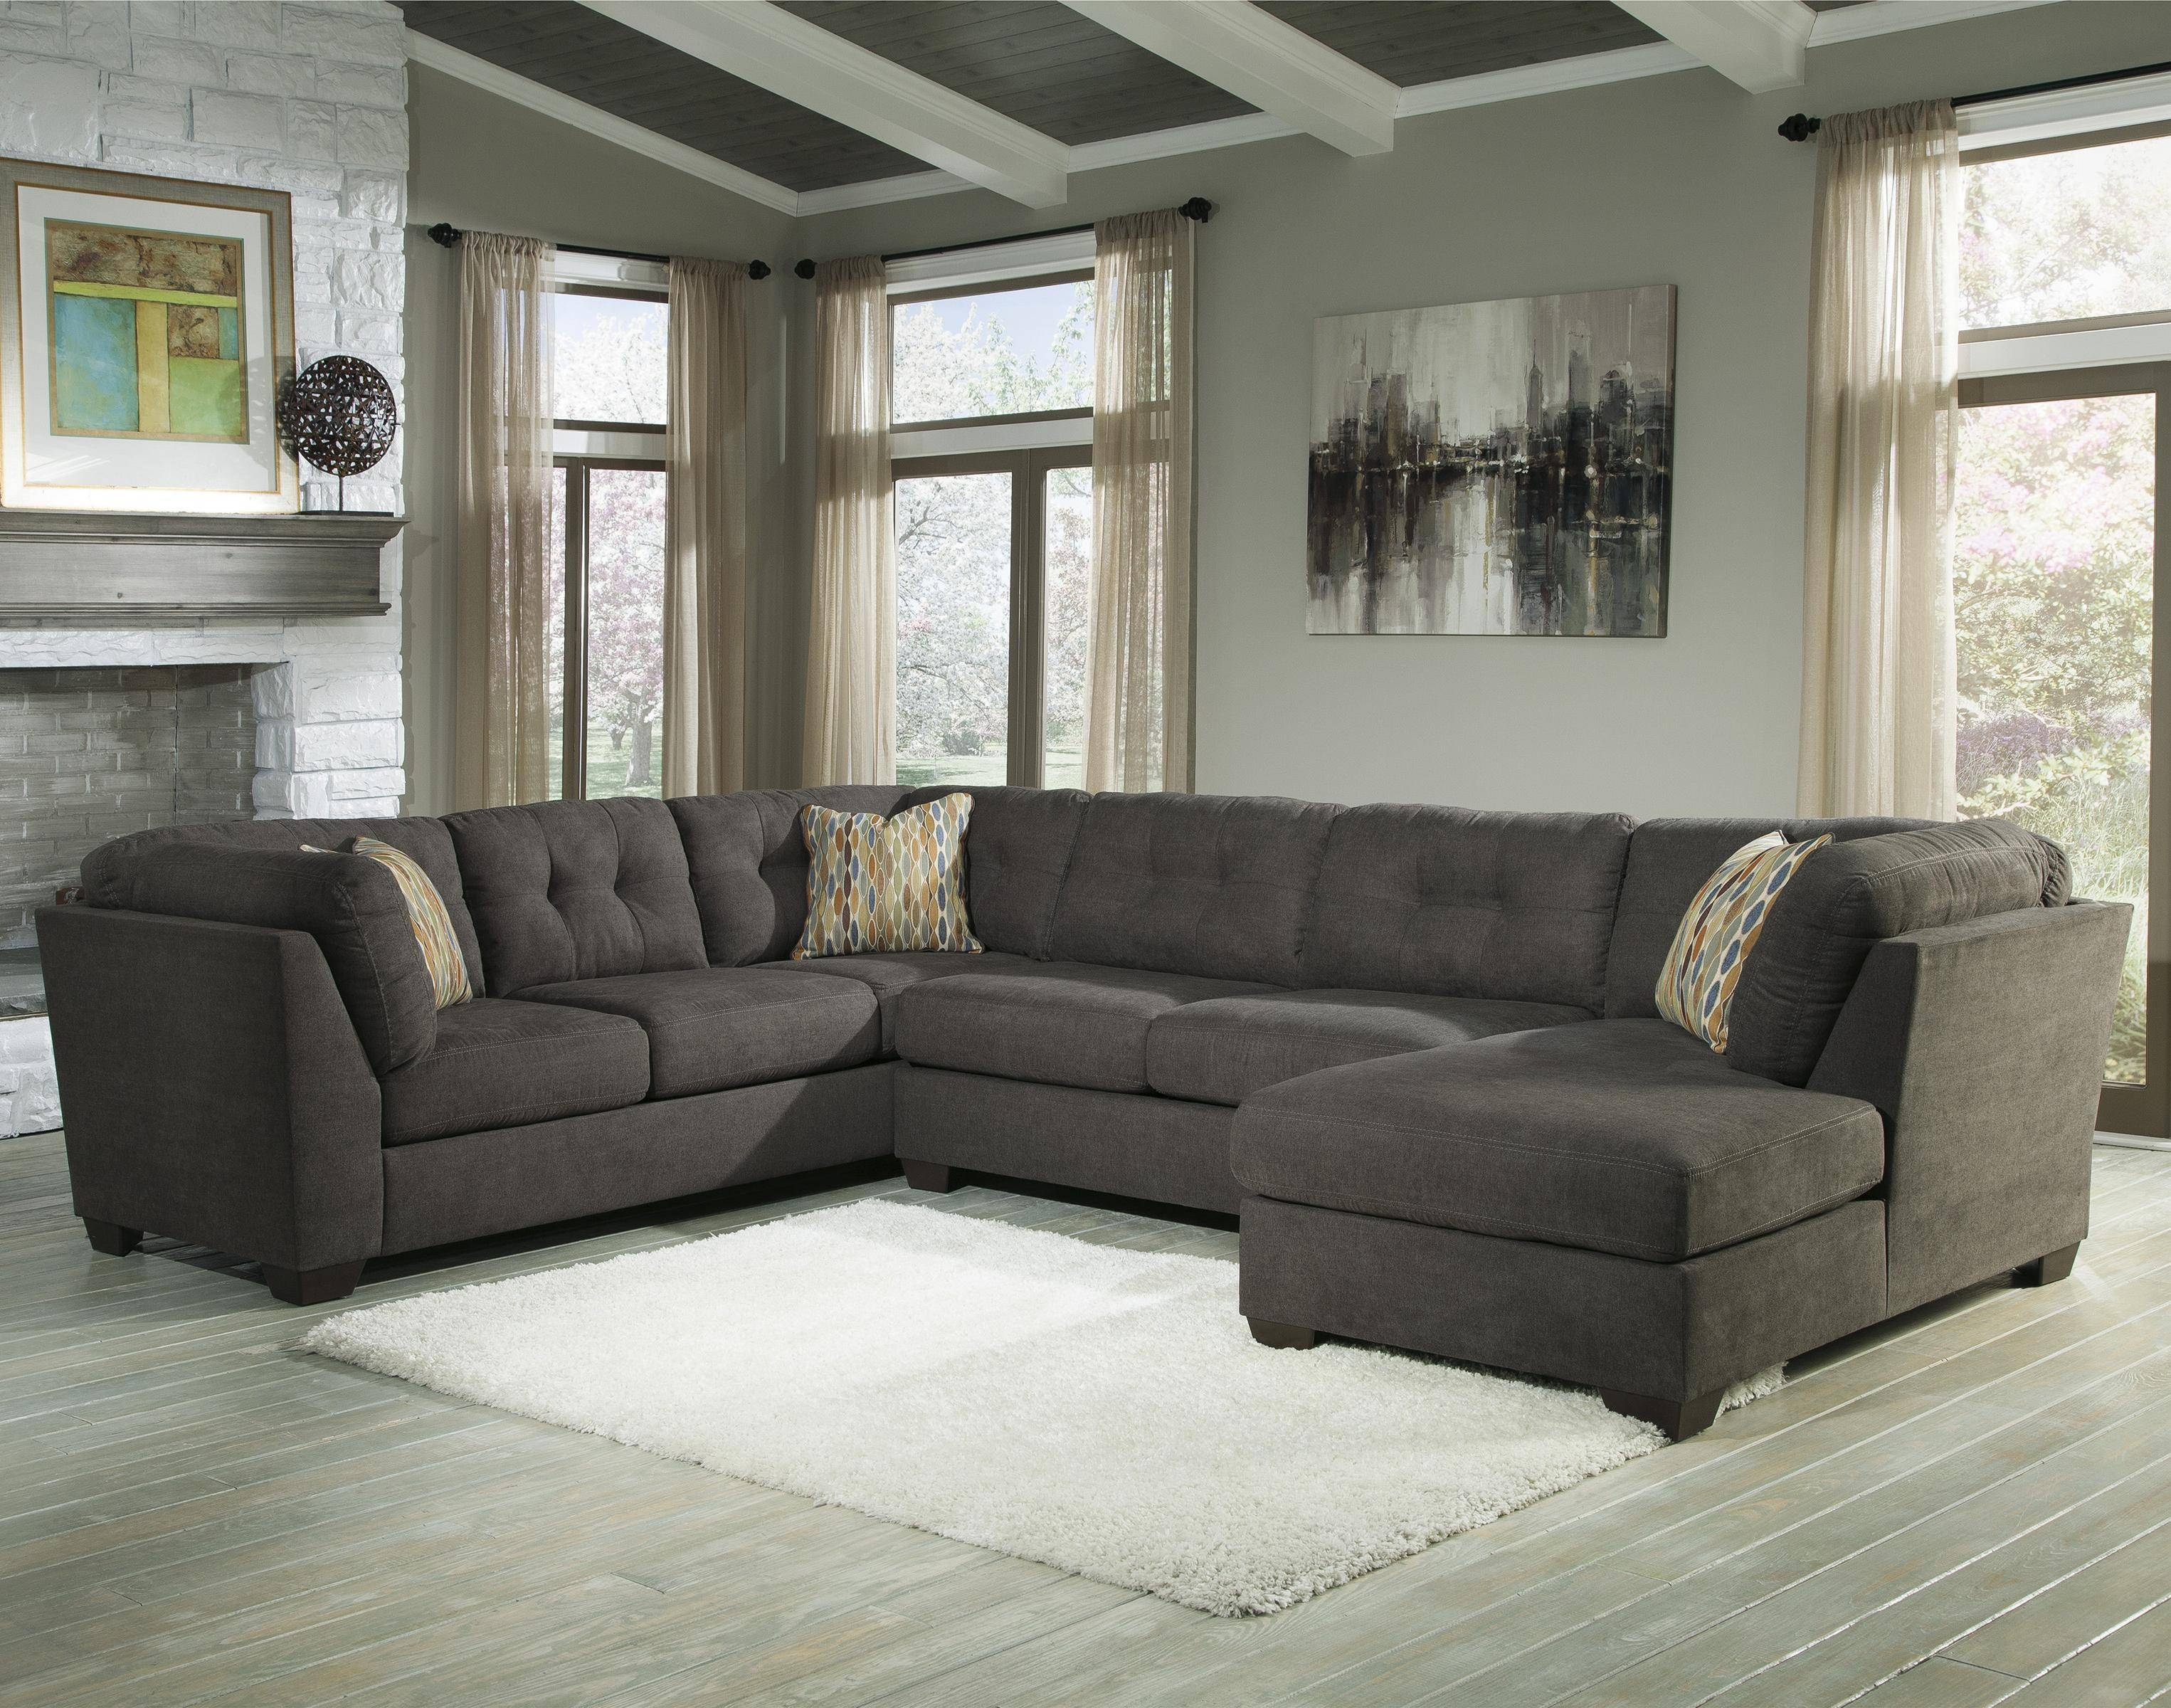 Awesome Gray Modular Sectional Sofa In Jcpenney With Bauhaus Intended For Jcpenney Sectional Sofas (View 9 of 15)